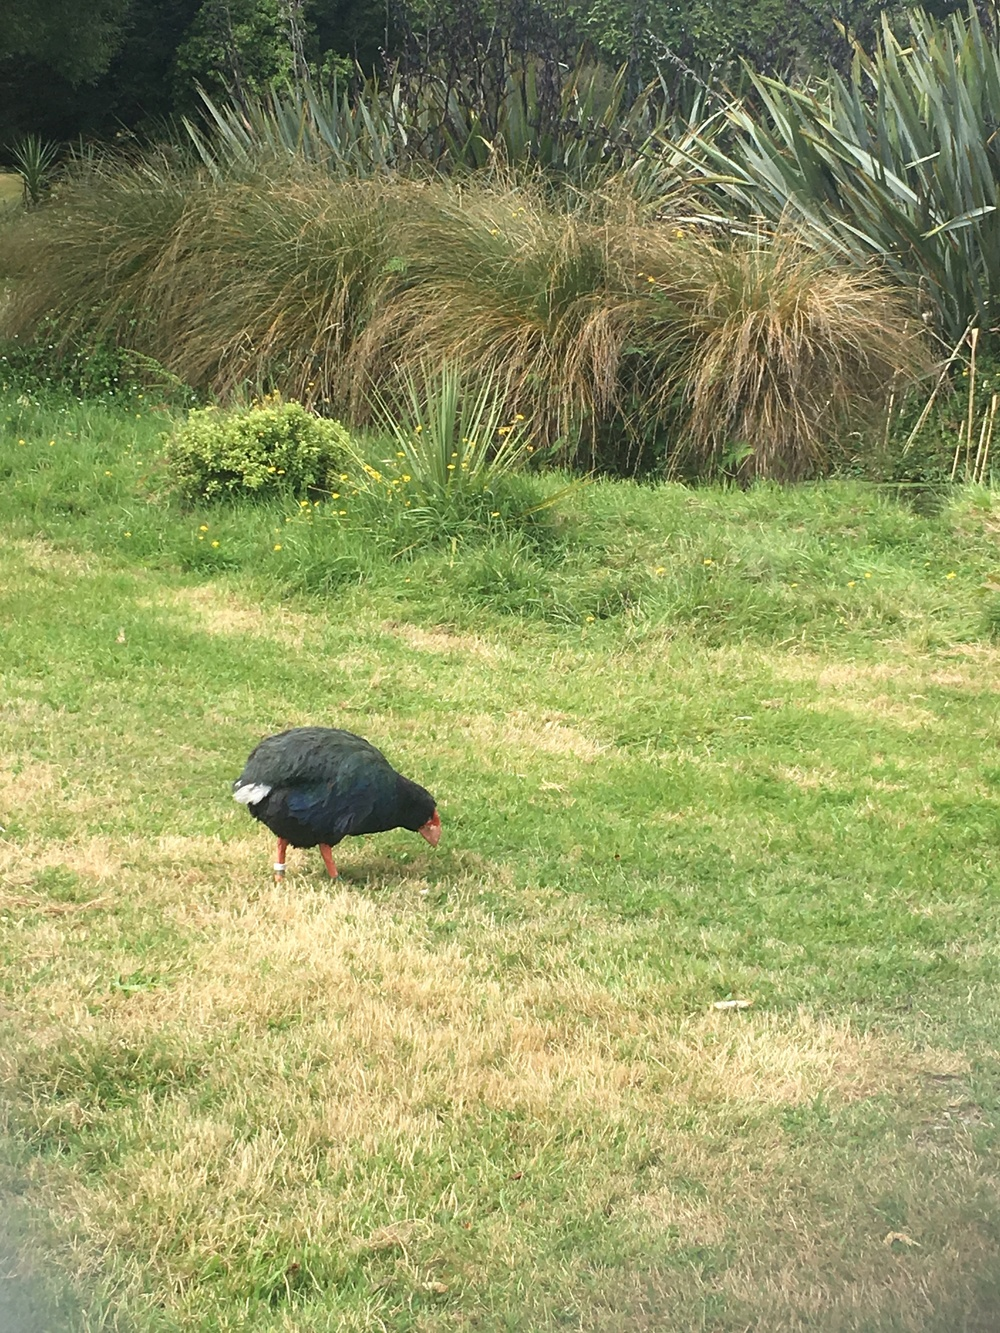 Takahe! An indigenous flightless bird